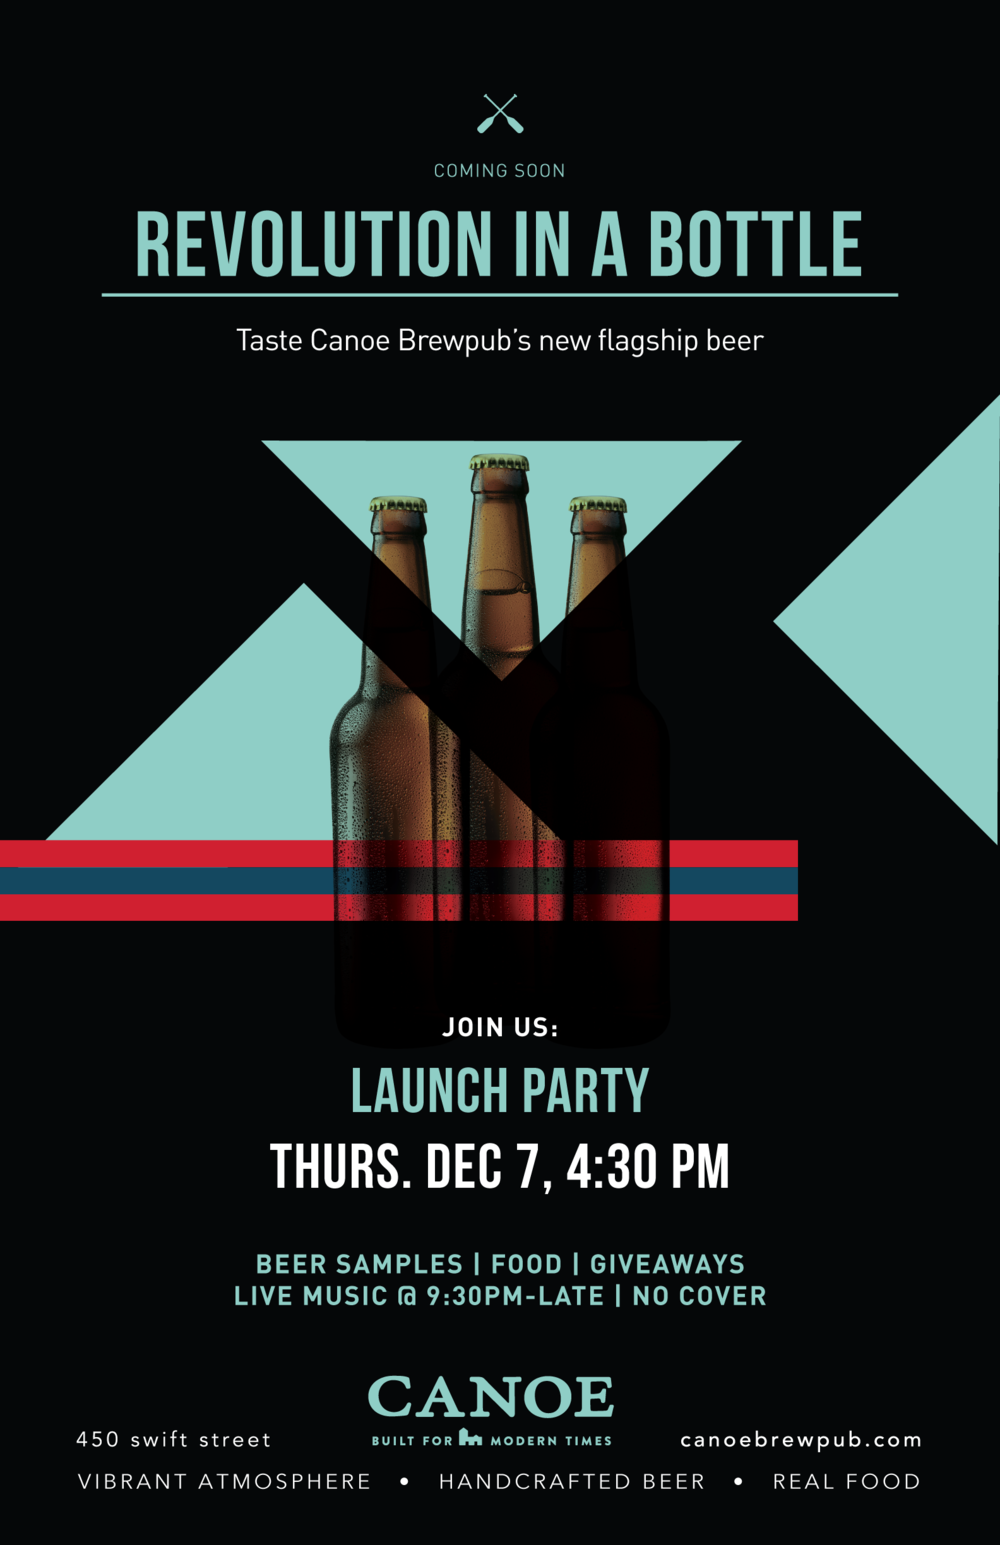 revolution in a bottle, canoe brewpub